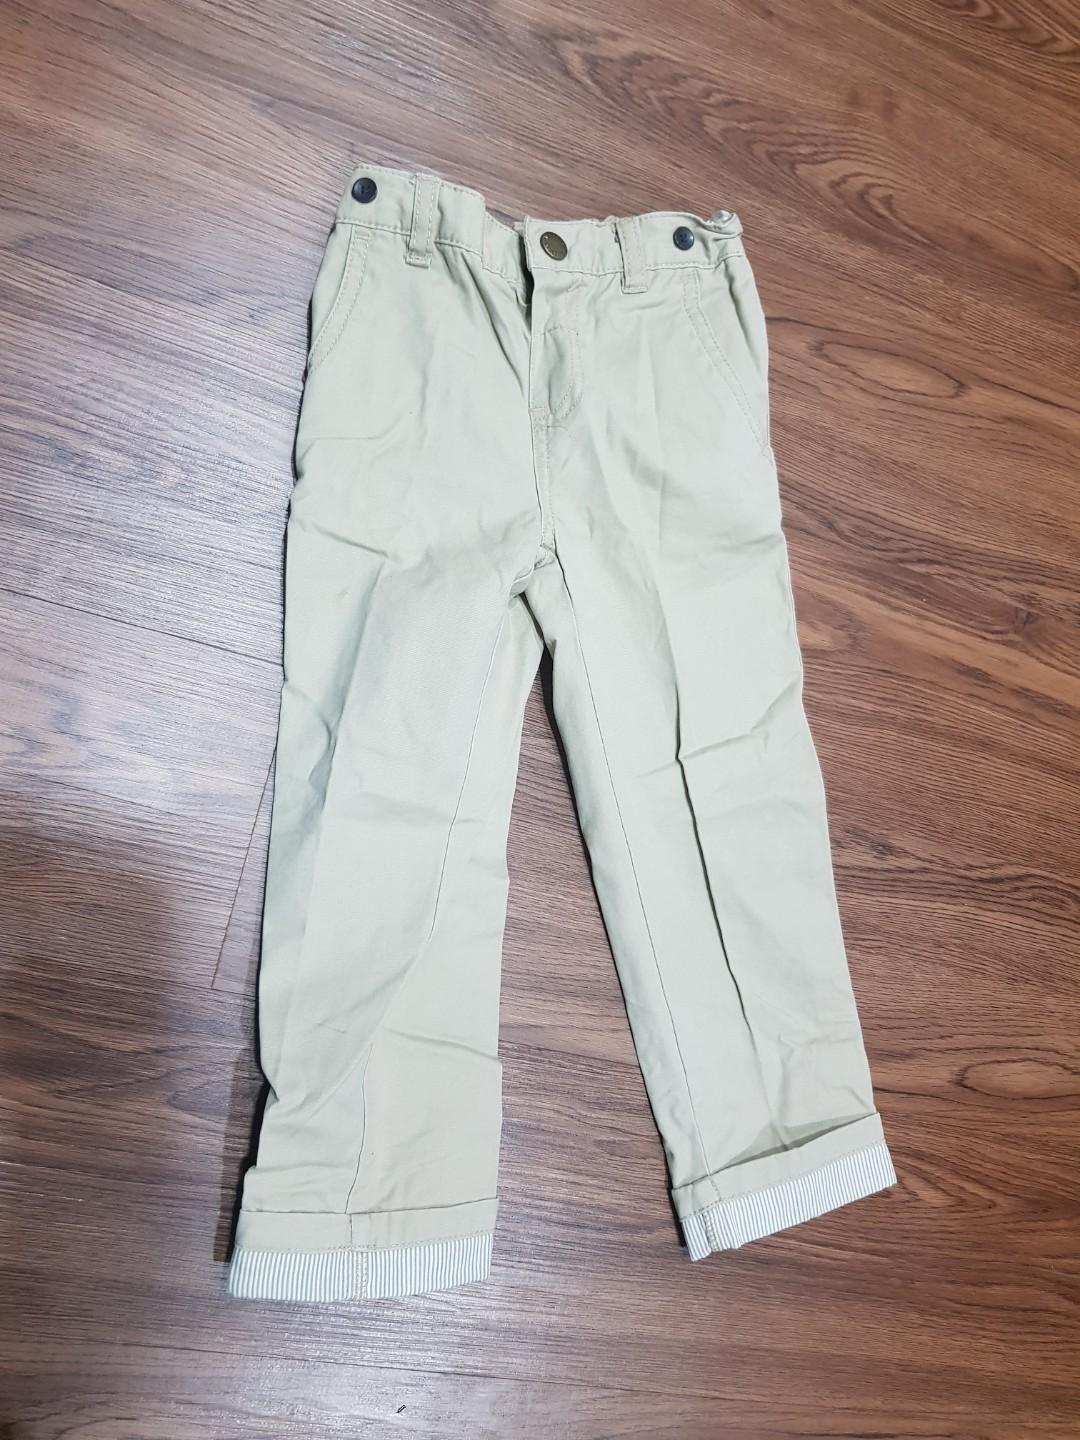 Beige Pants for boys